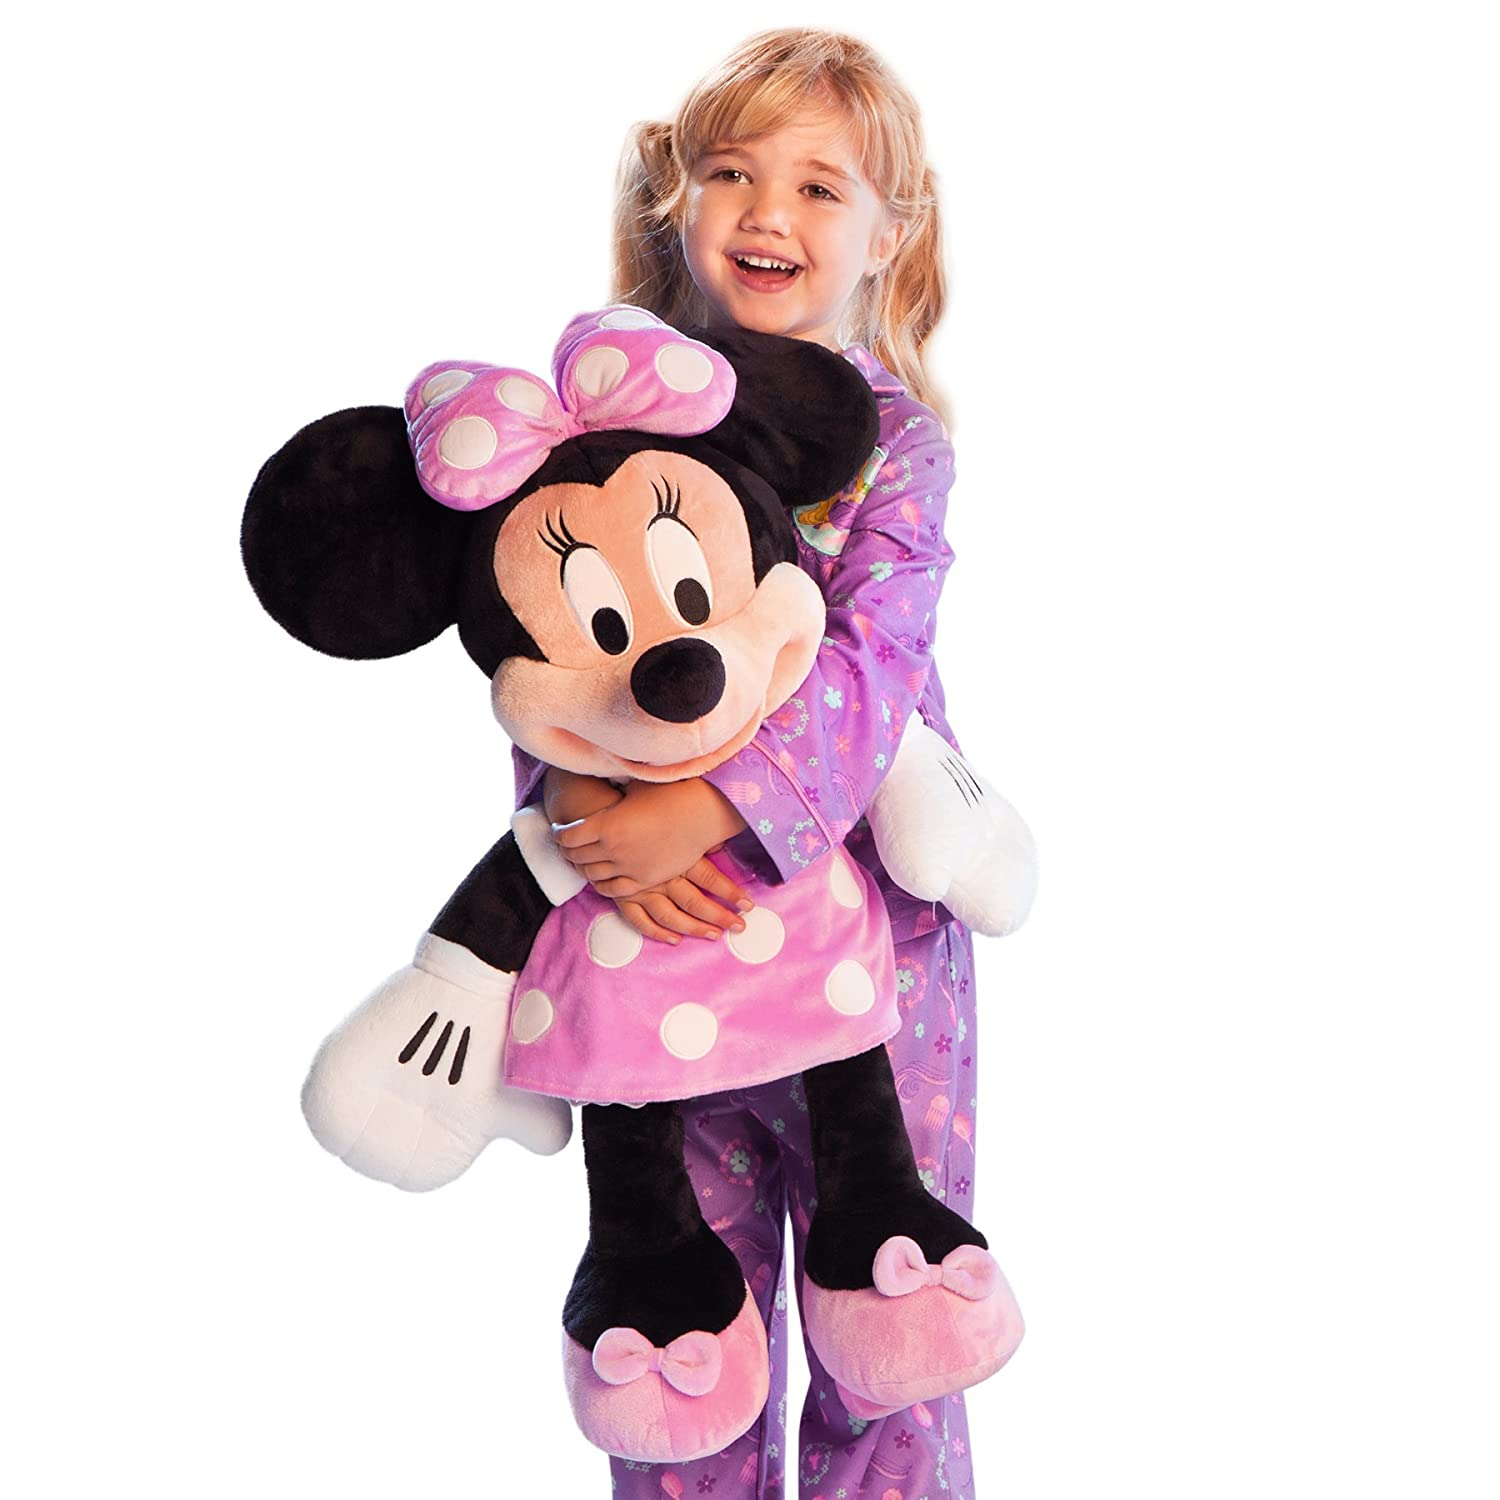 Jumbo Minnie Mouse Plush Toy